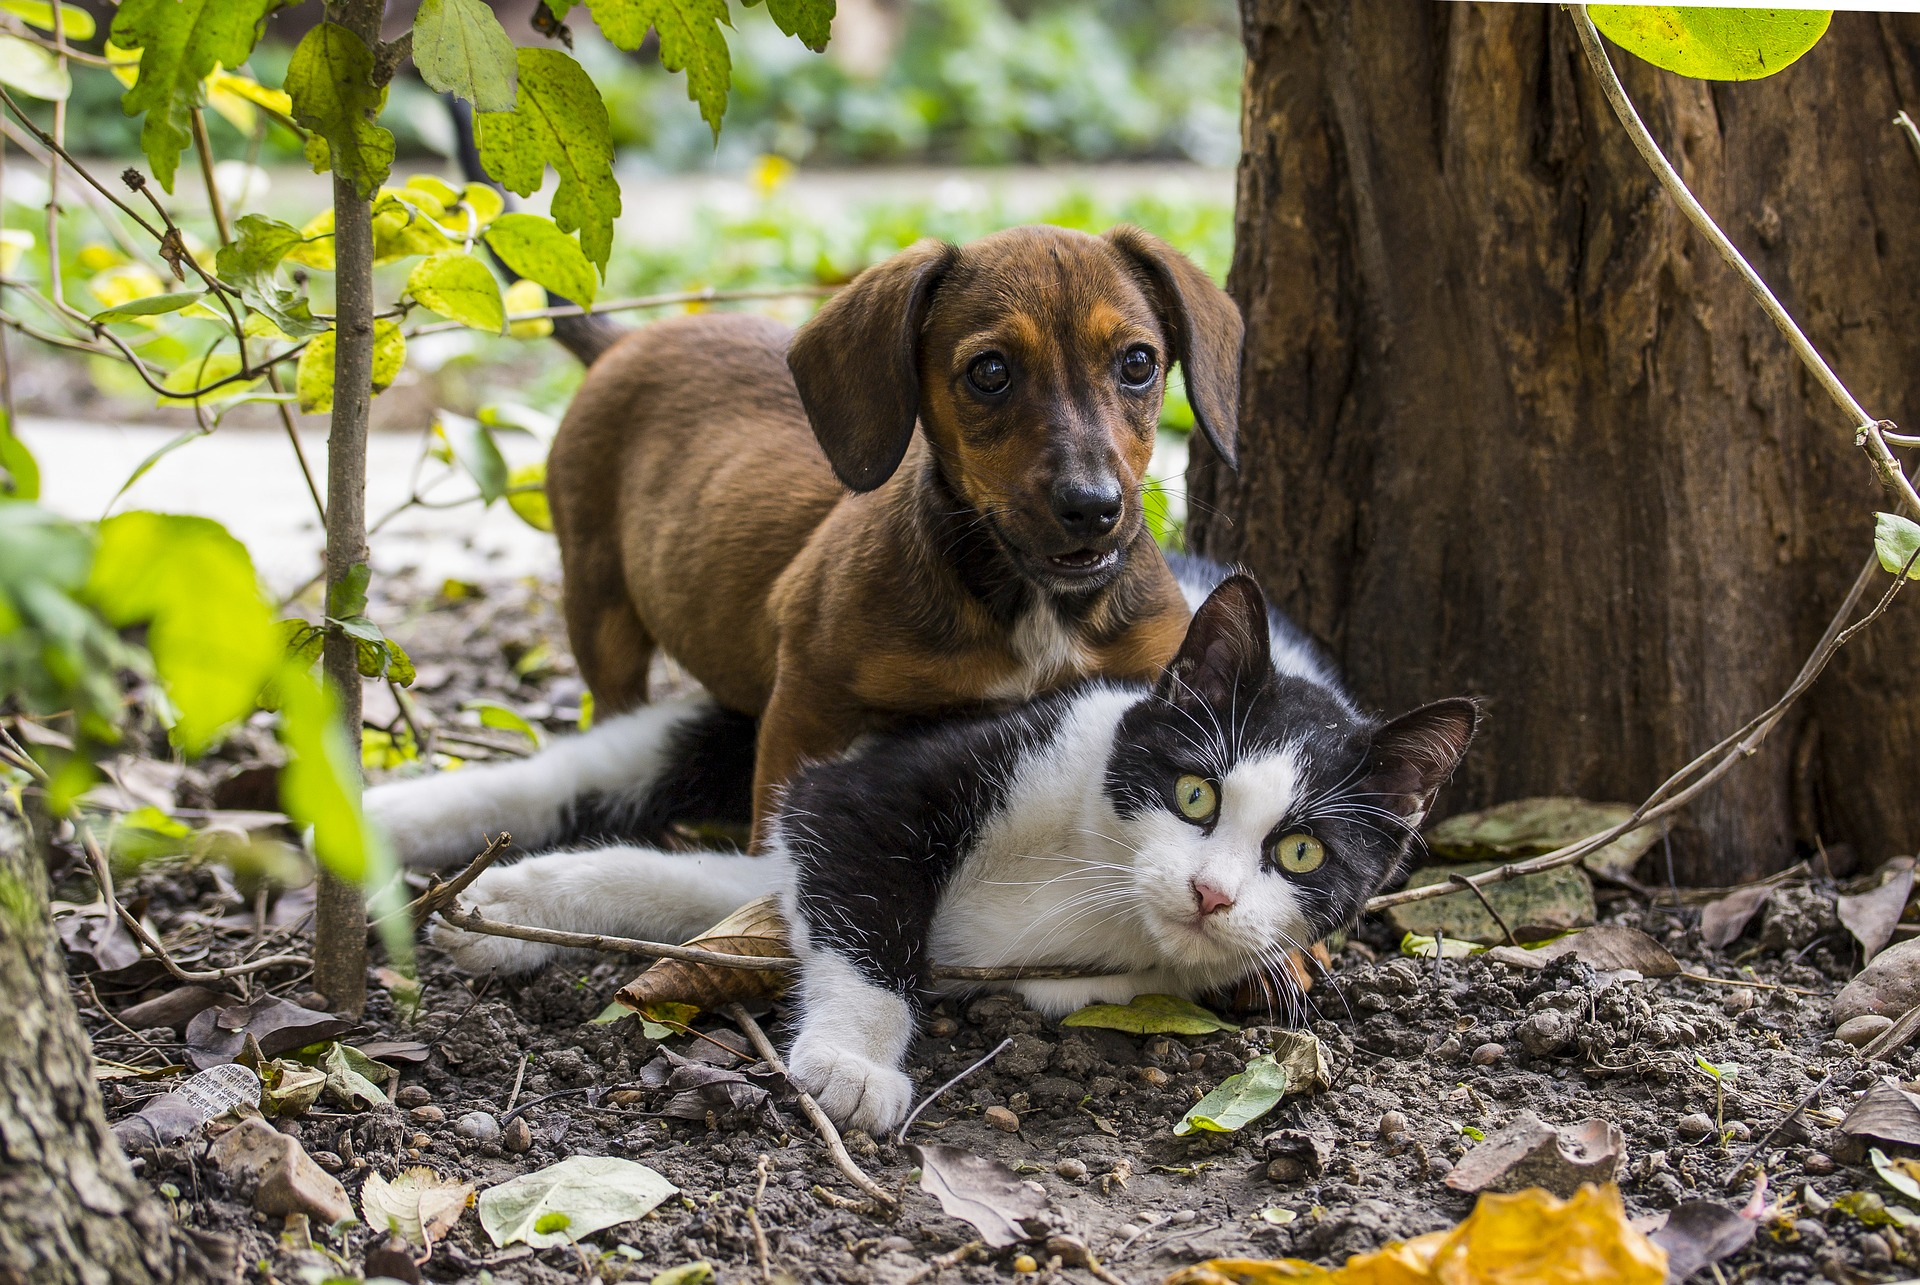 Picture of dog and cat in the woods